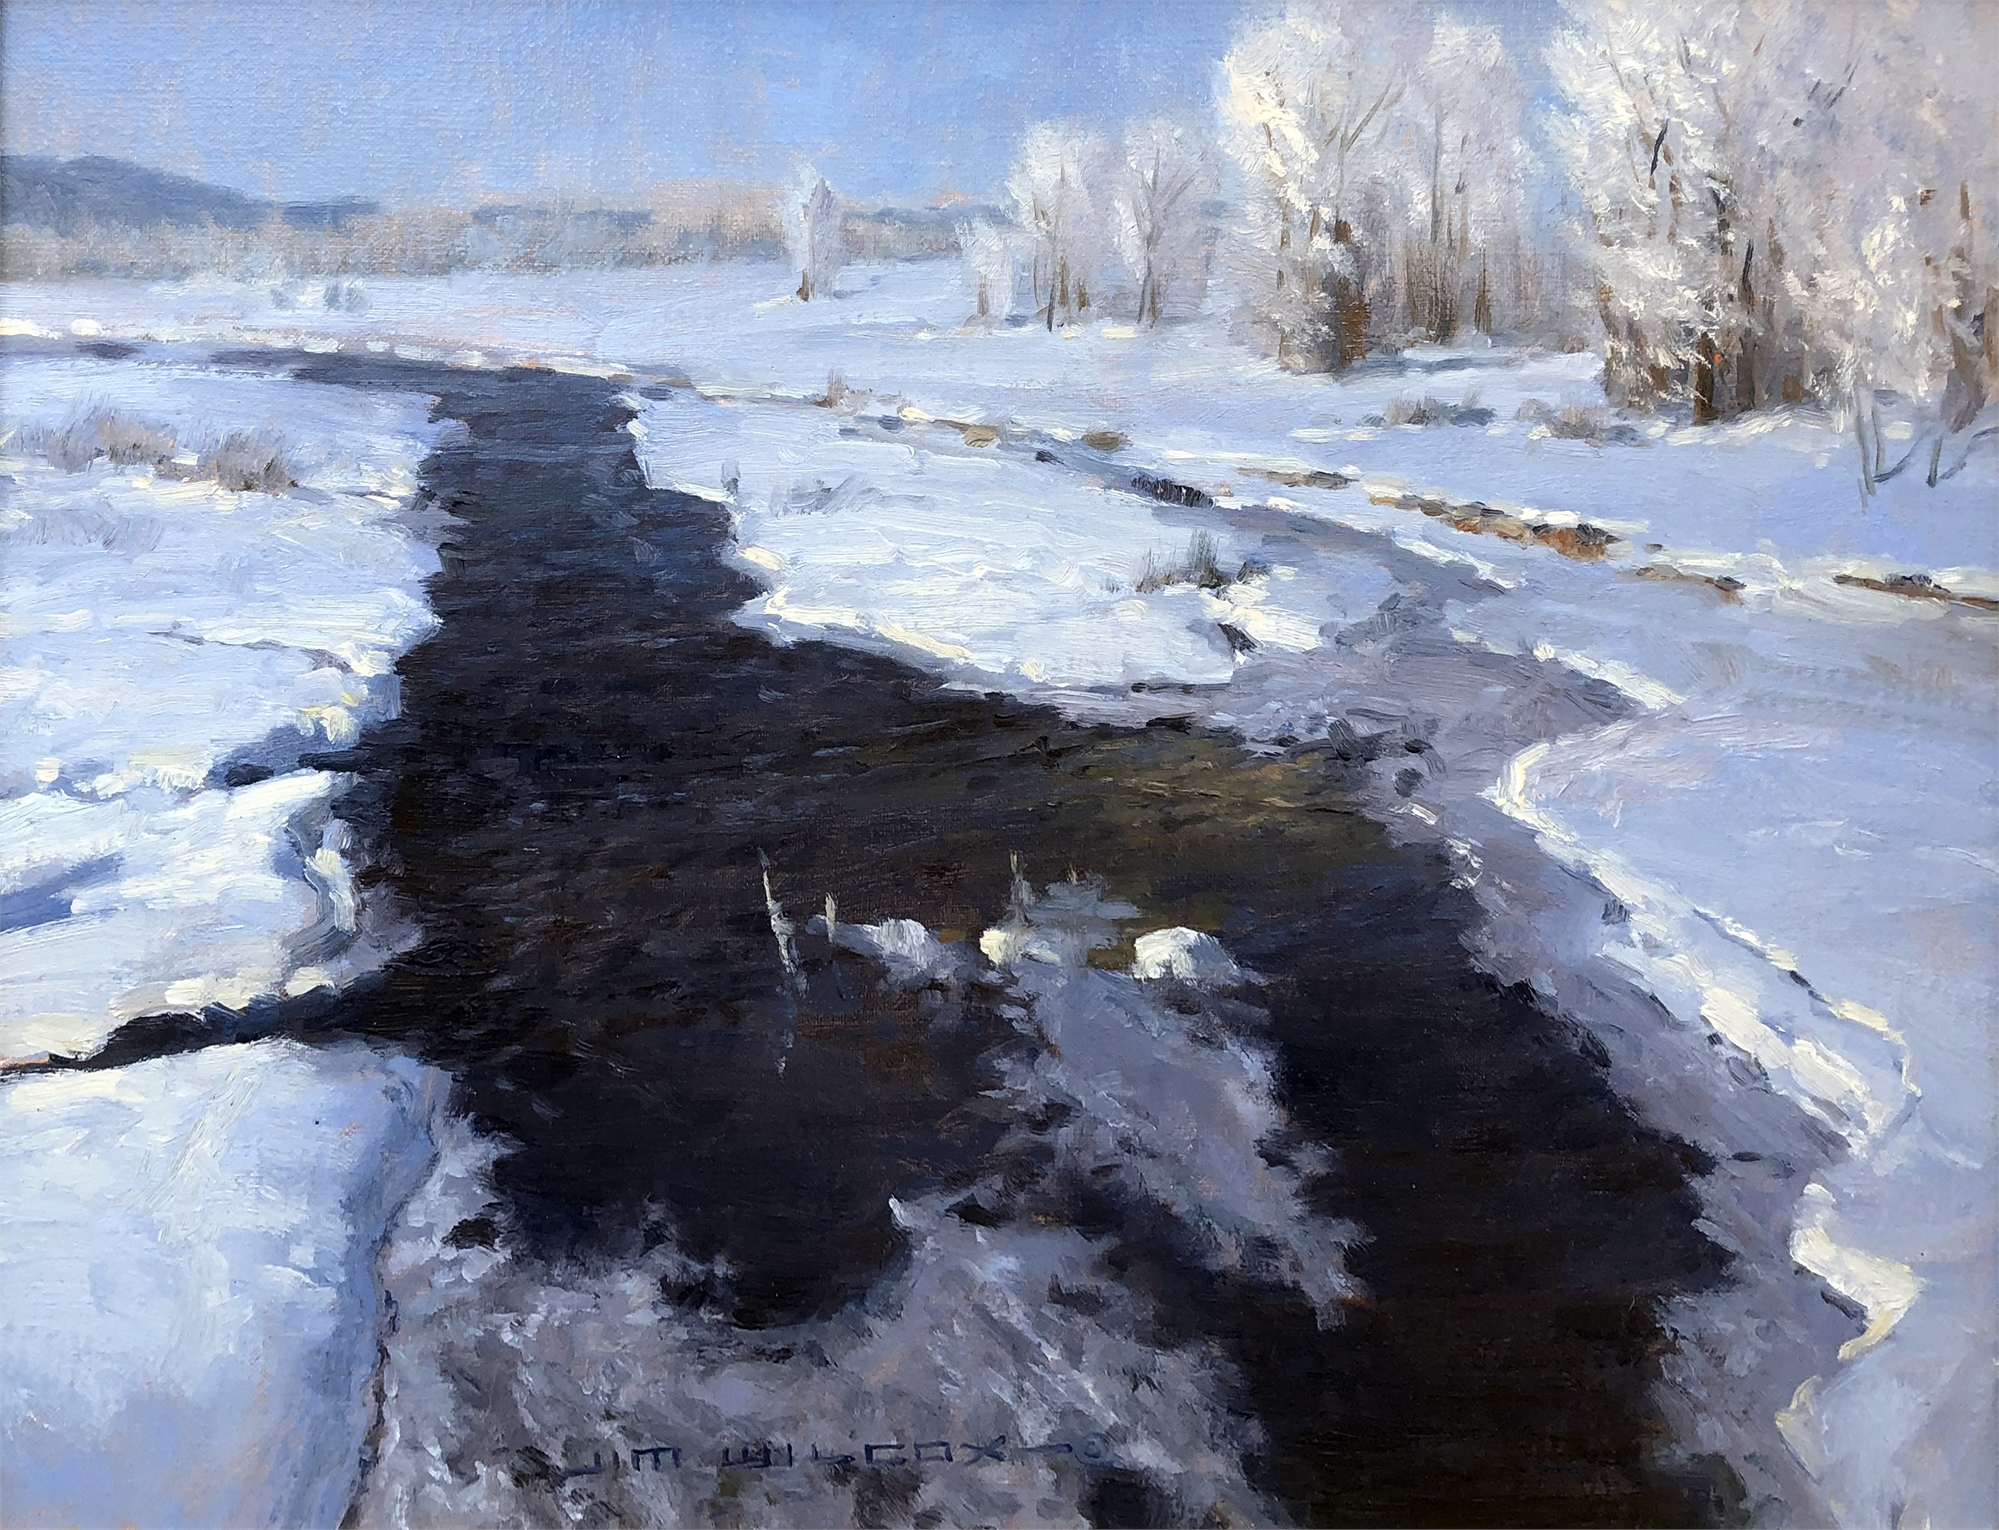 February Frost by Jim Wilcox